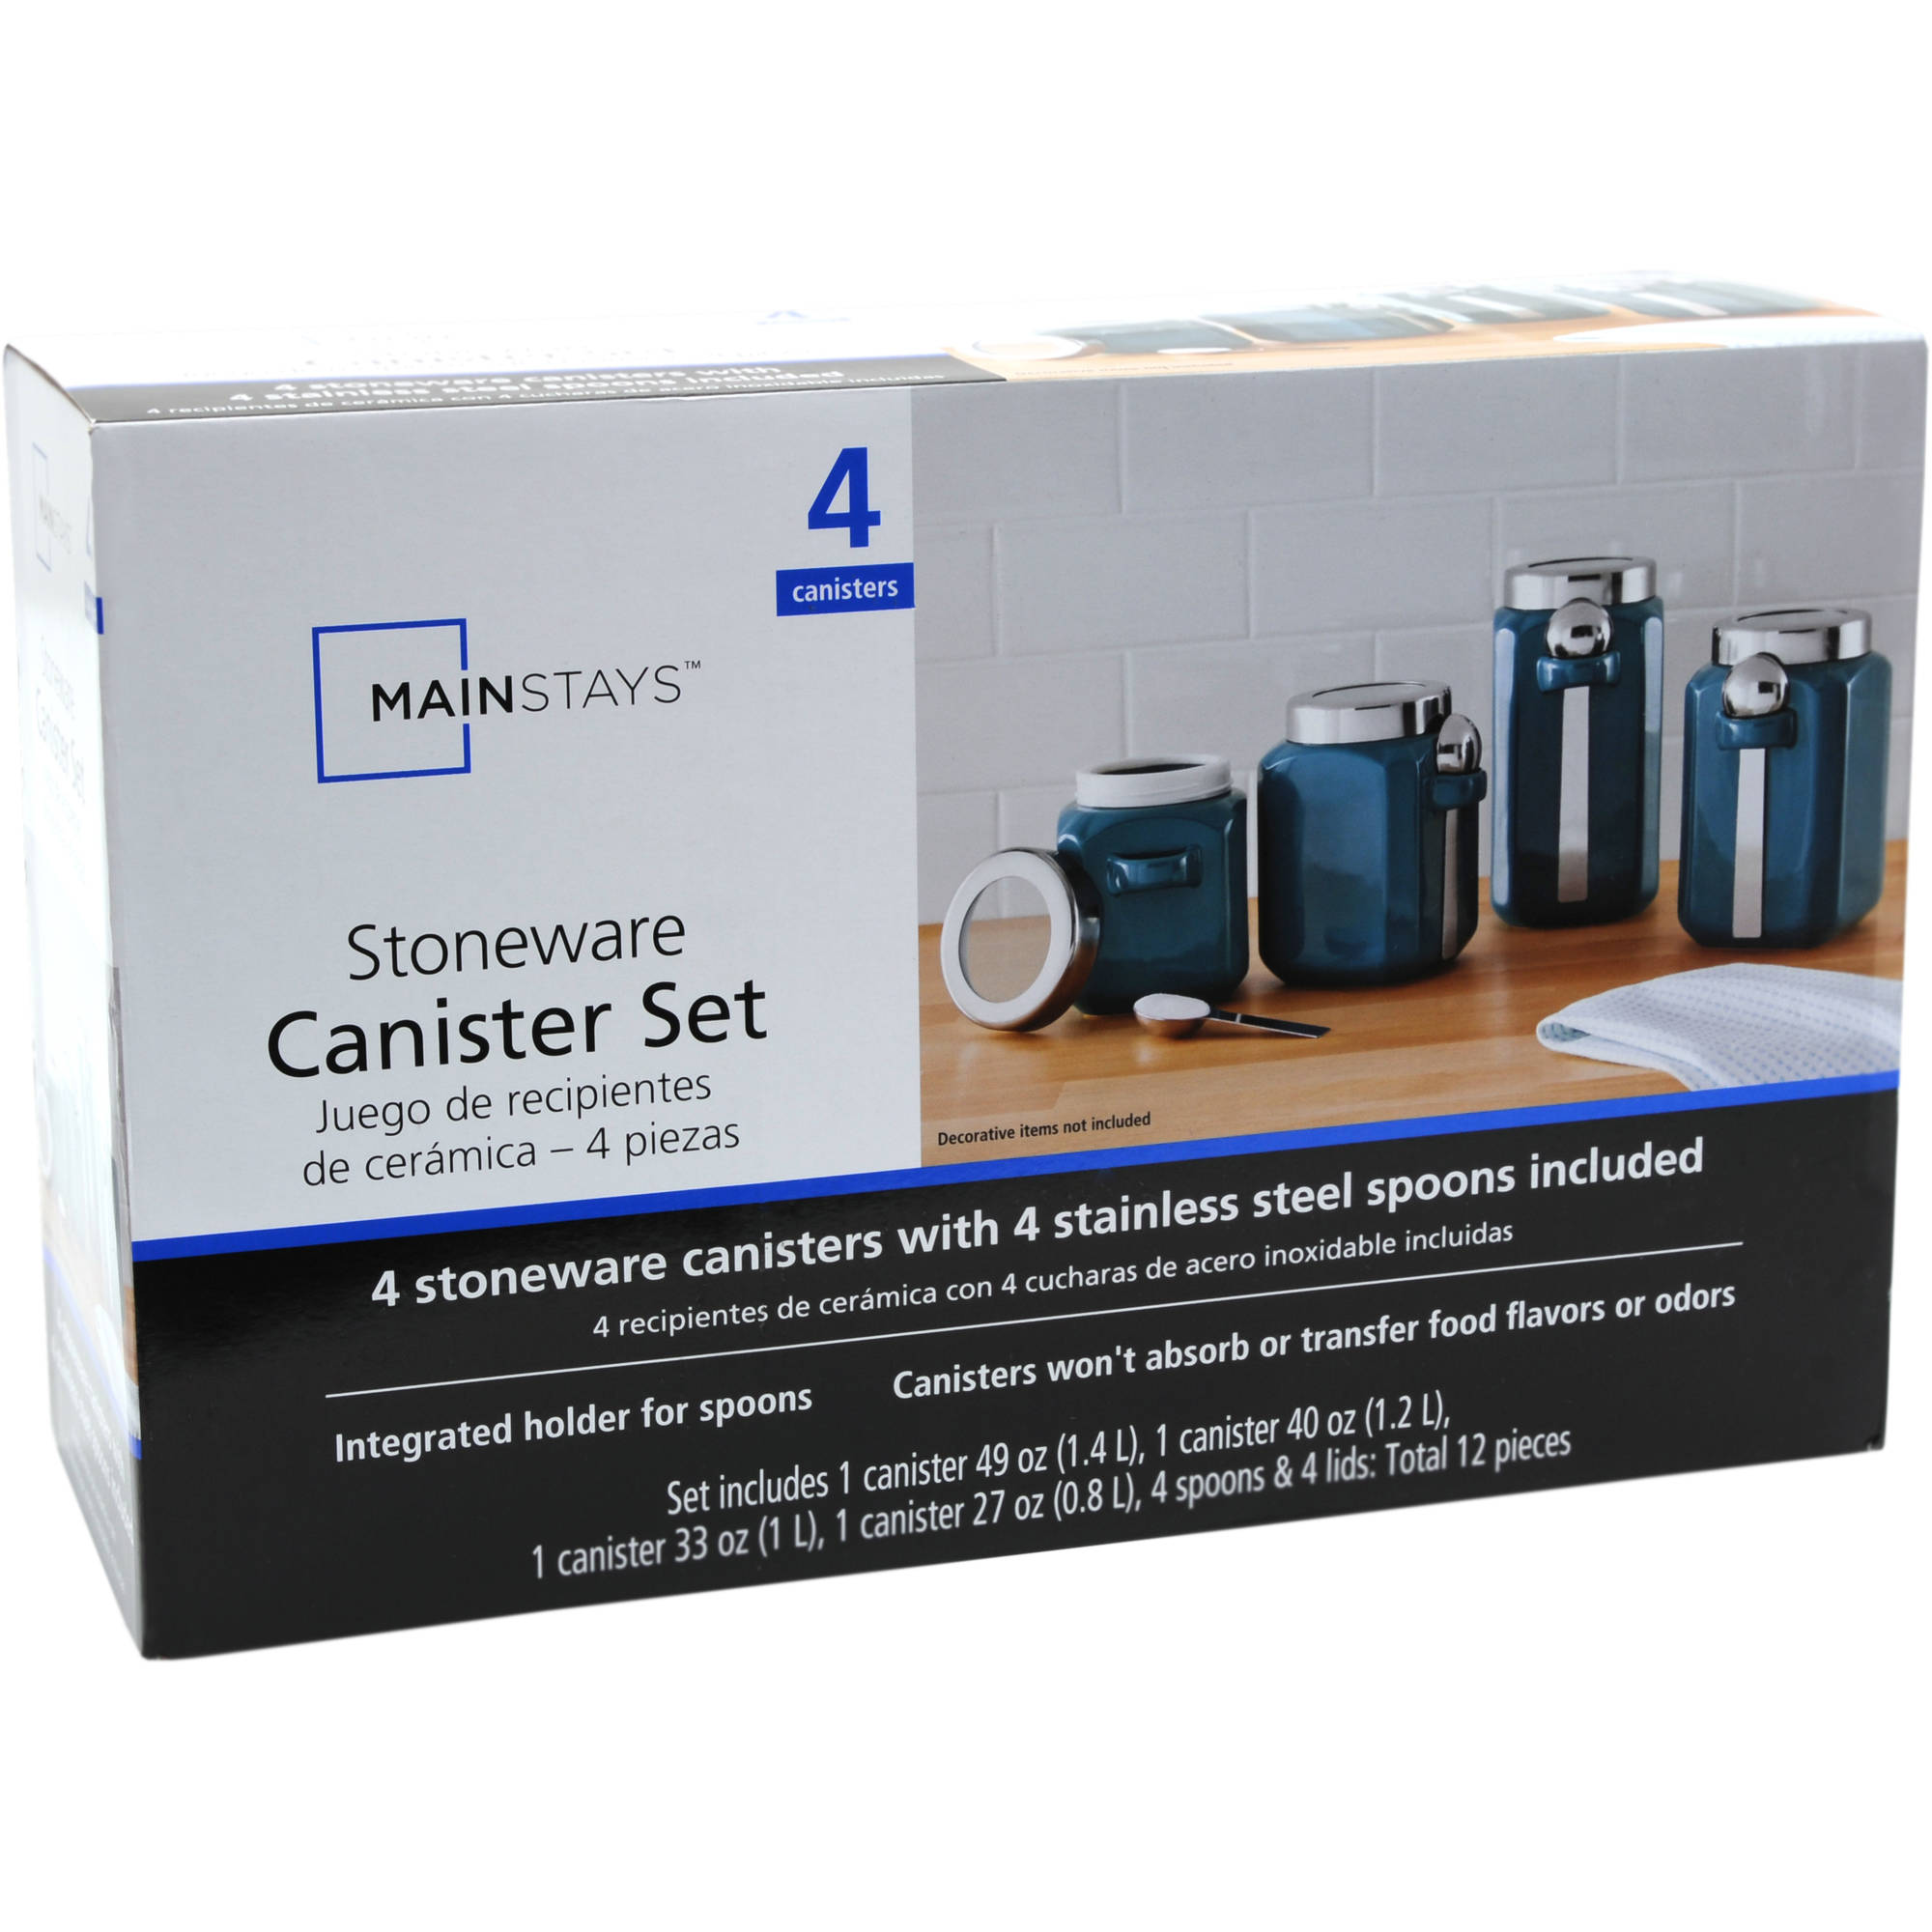 Mainstays, pantry,   Durable Ceramic for Daily Use-Contemporary Design and Color,  Canister set  ,1-pck